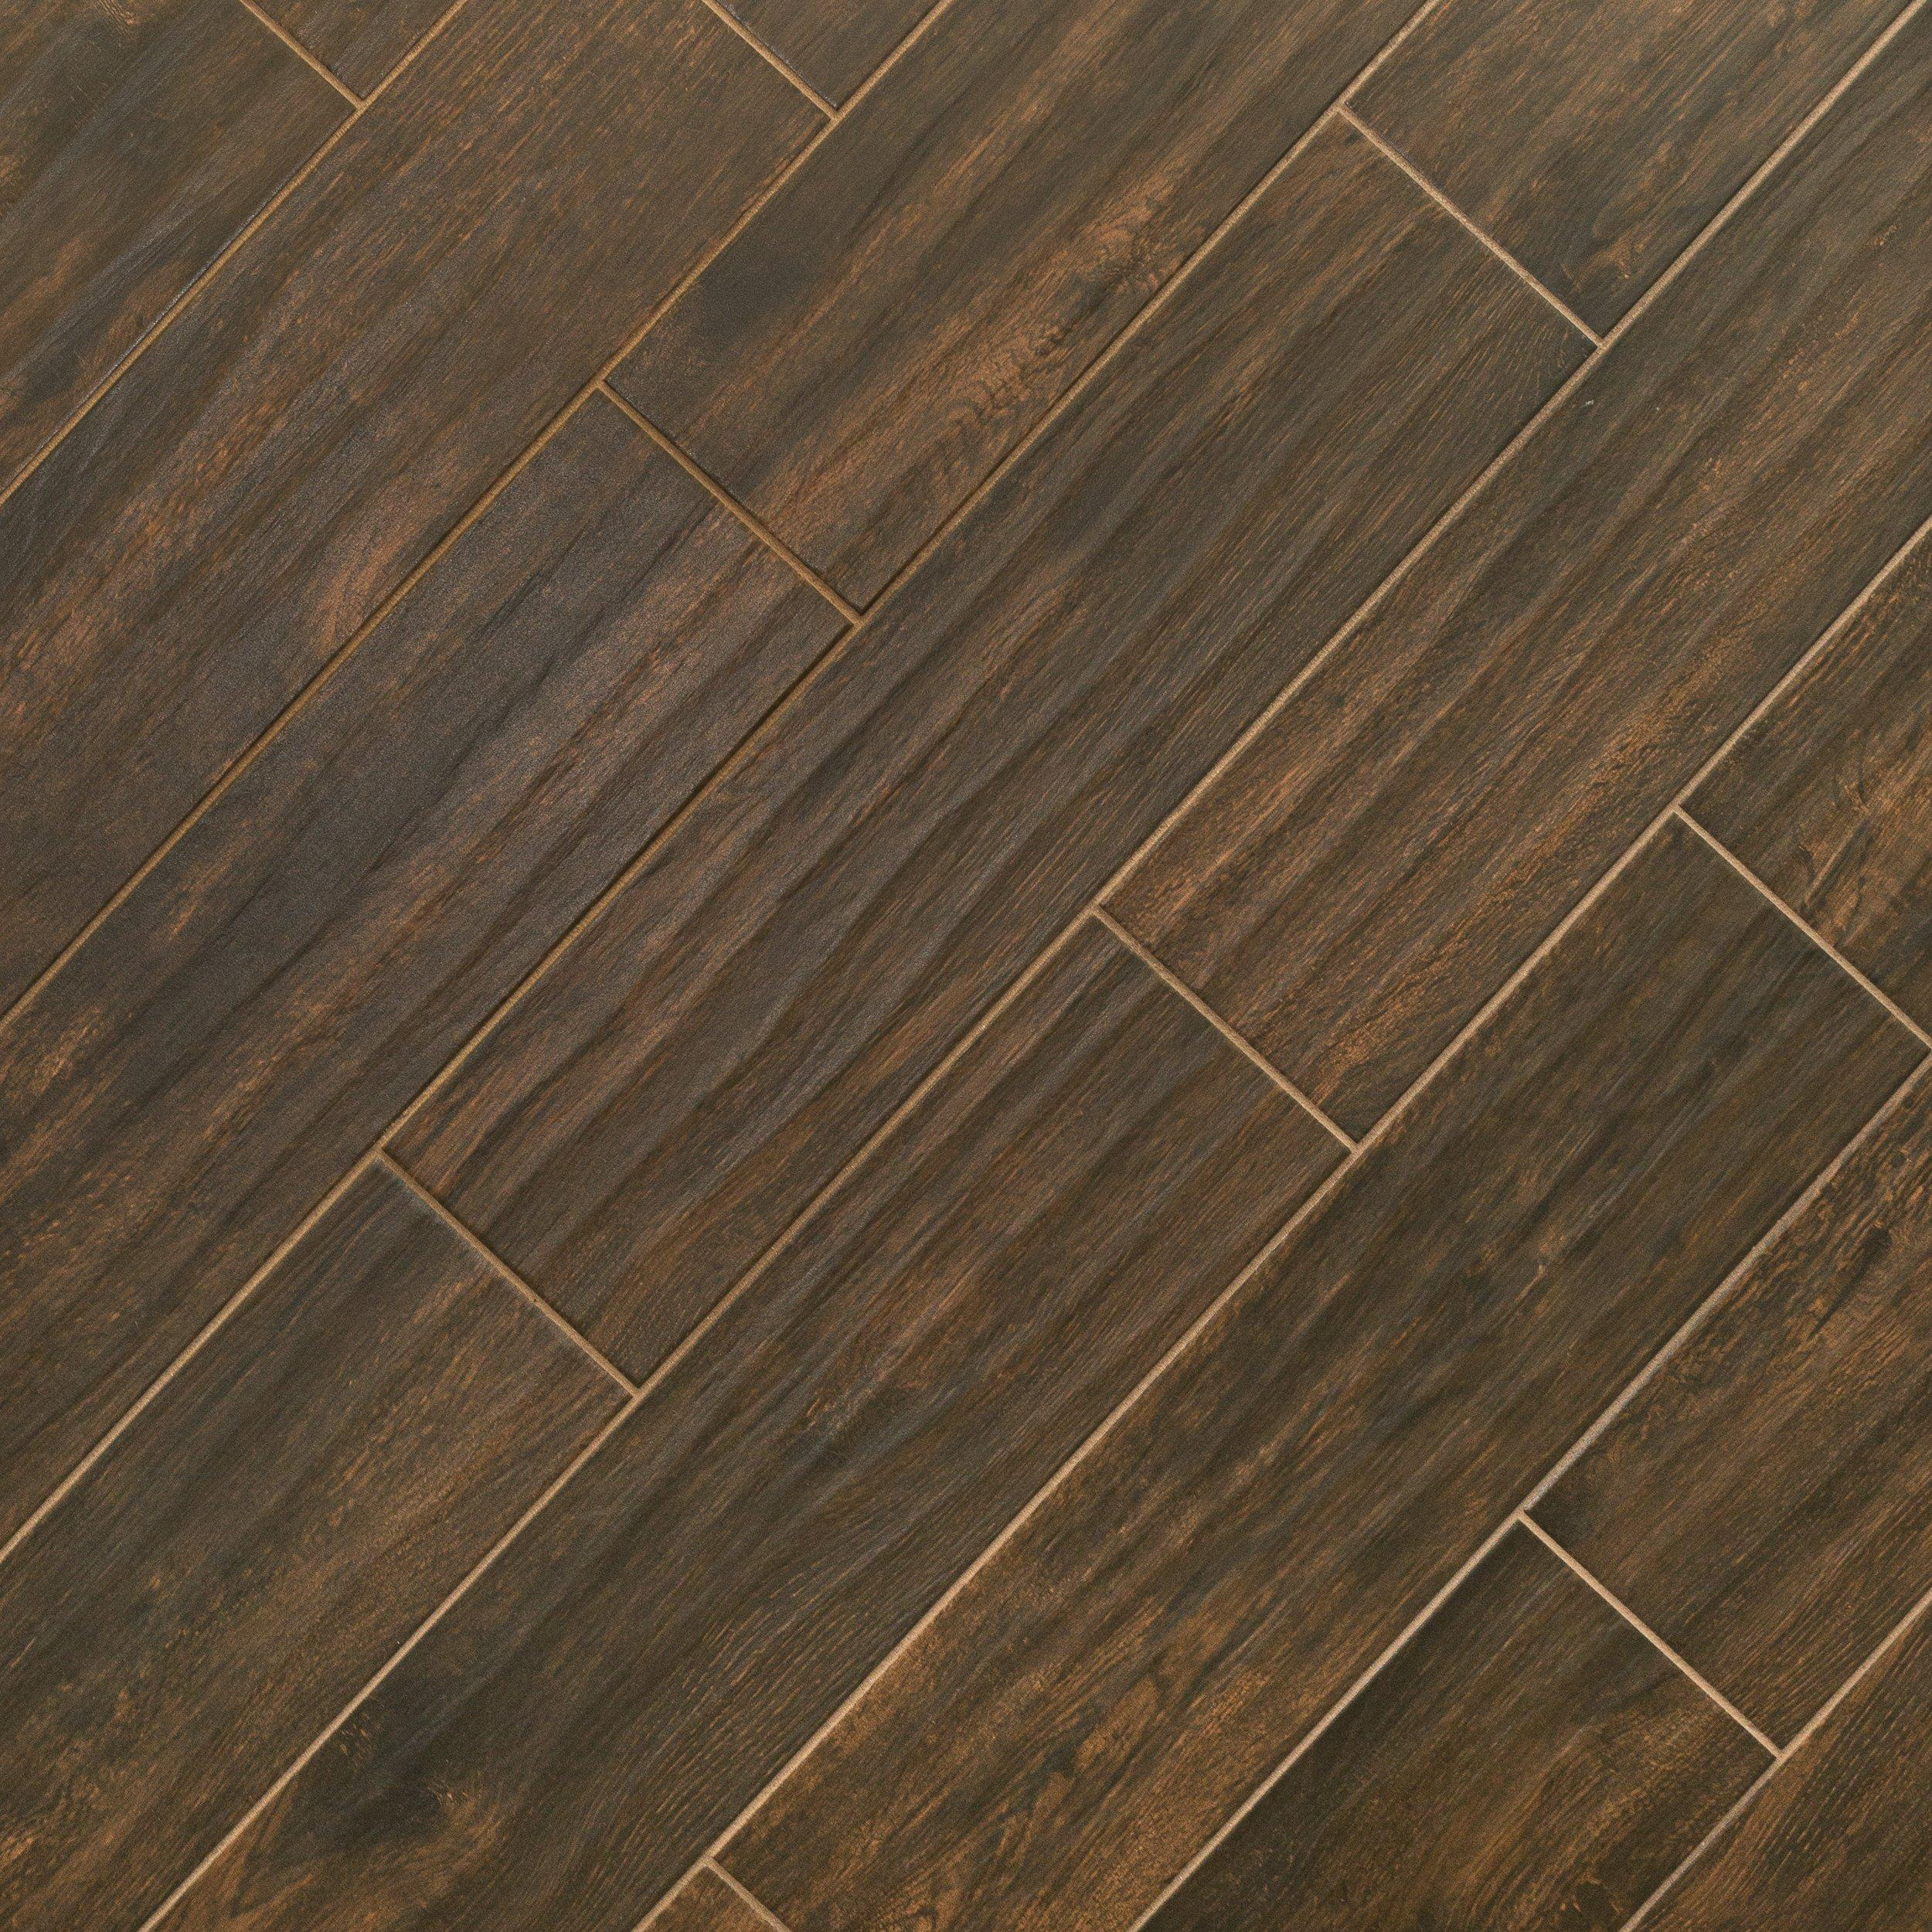 Porcelain Tile That Looks Like Wood Porcelain Tiles That